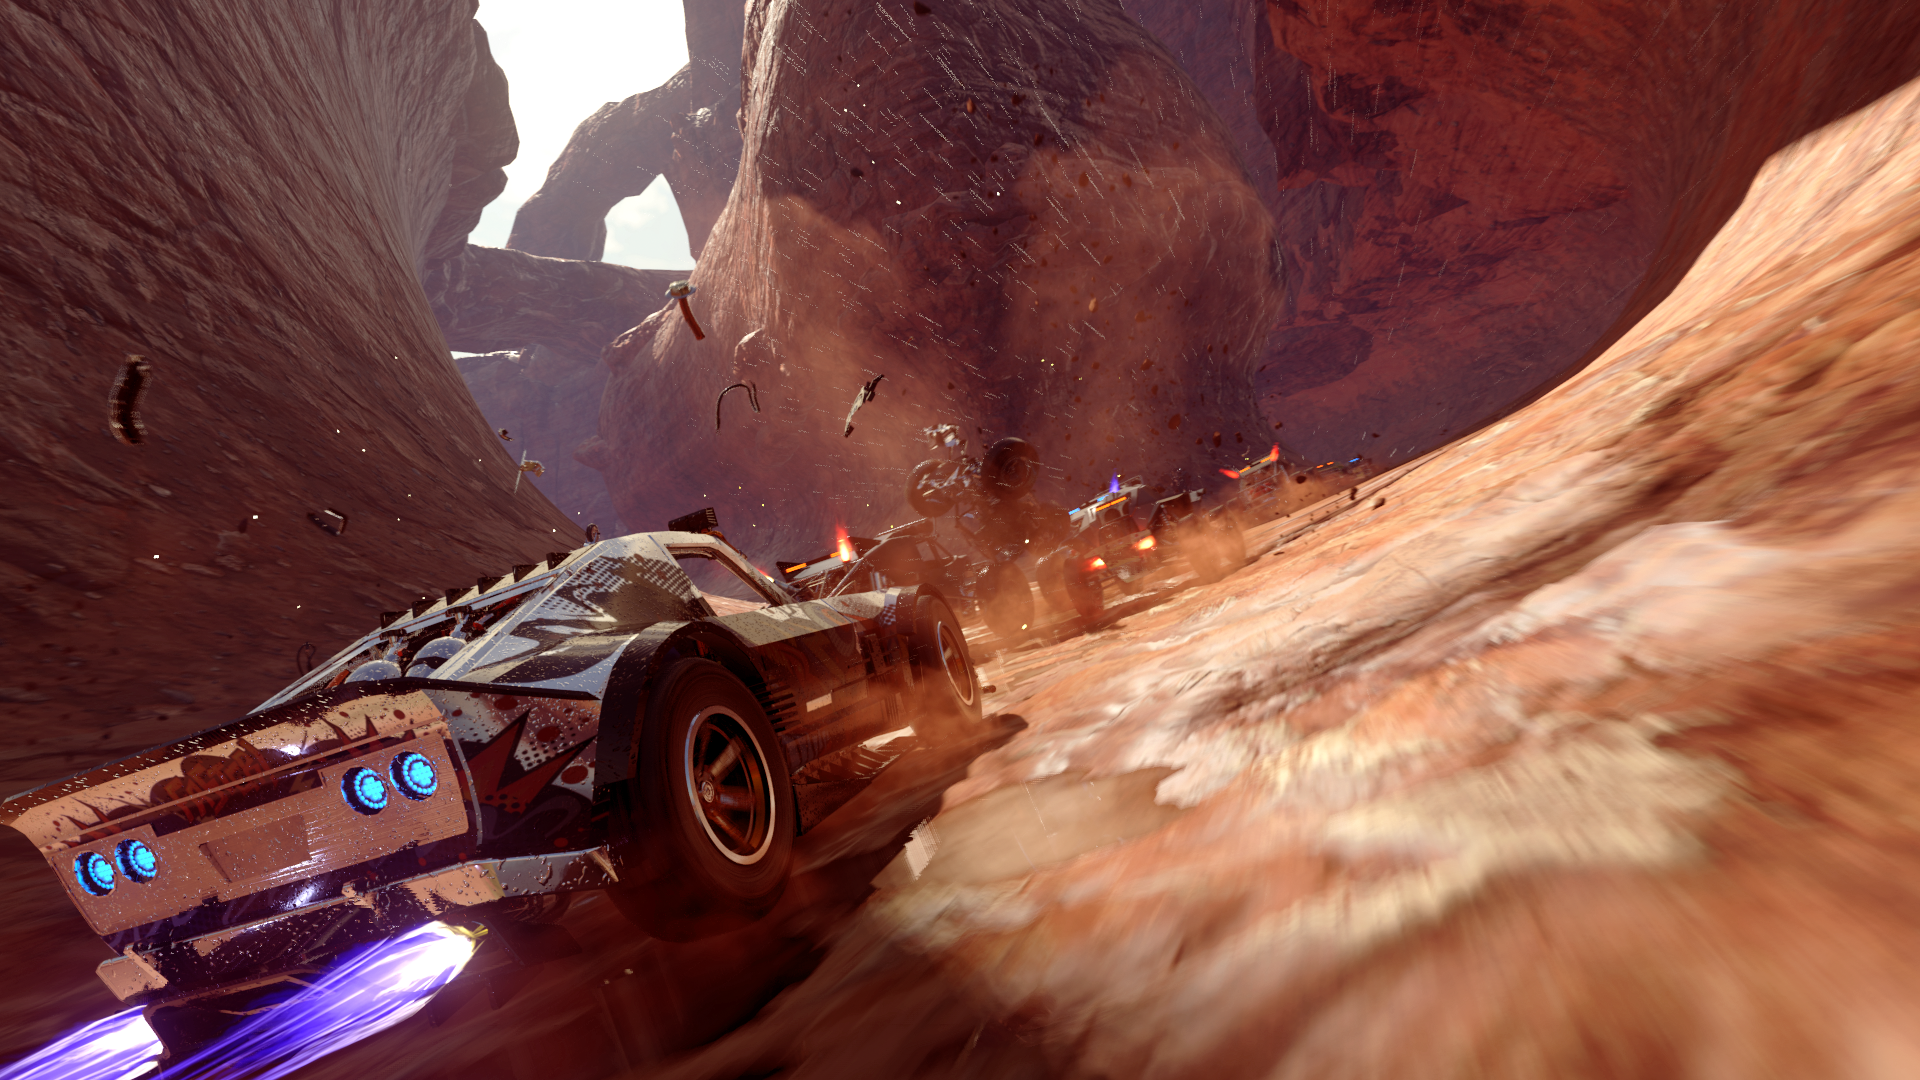 Onrush's environments draw inspiration from the Motorstorm series